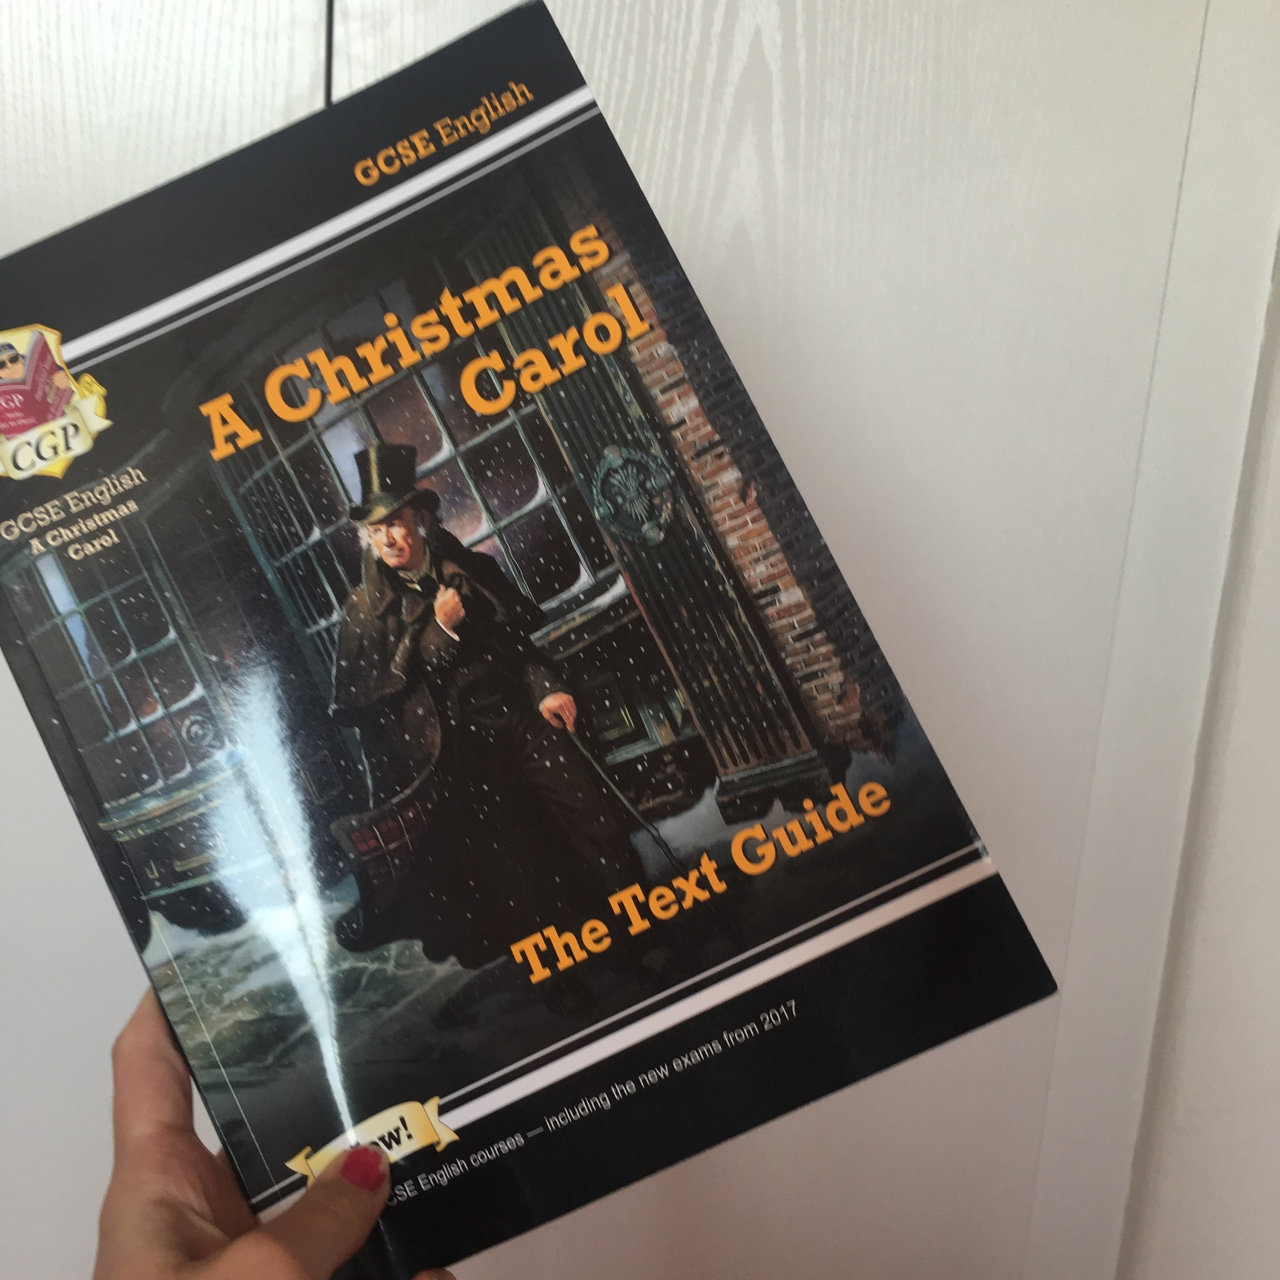 Christmas Carol Text Guide.A Christmas Carol Revision Guide Text Guide From Depop